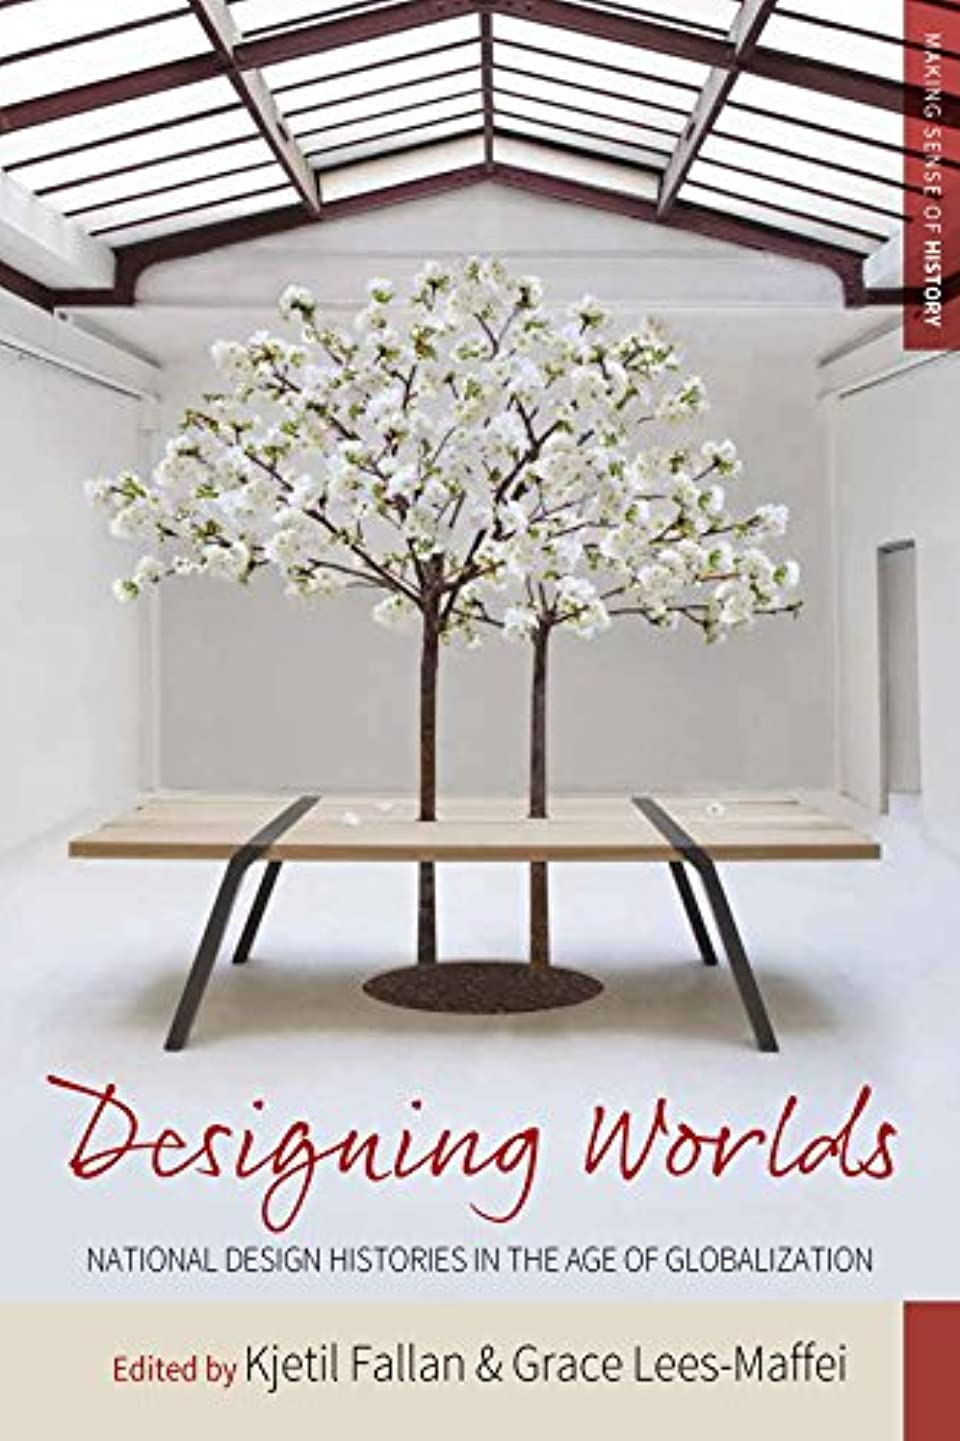 冷笑する開梱パケットDesigning Worlds: National Design Histories in an Age of Globalization (Making Sense of History Book 24) (English Edition)